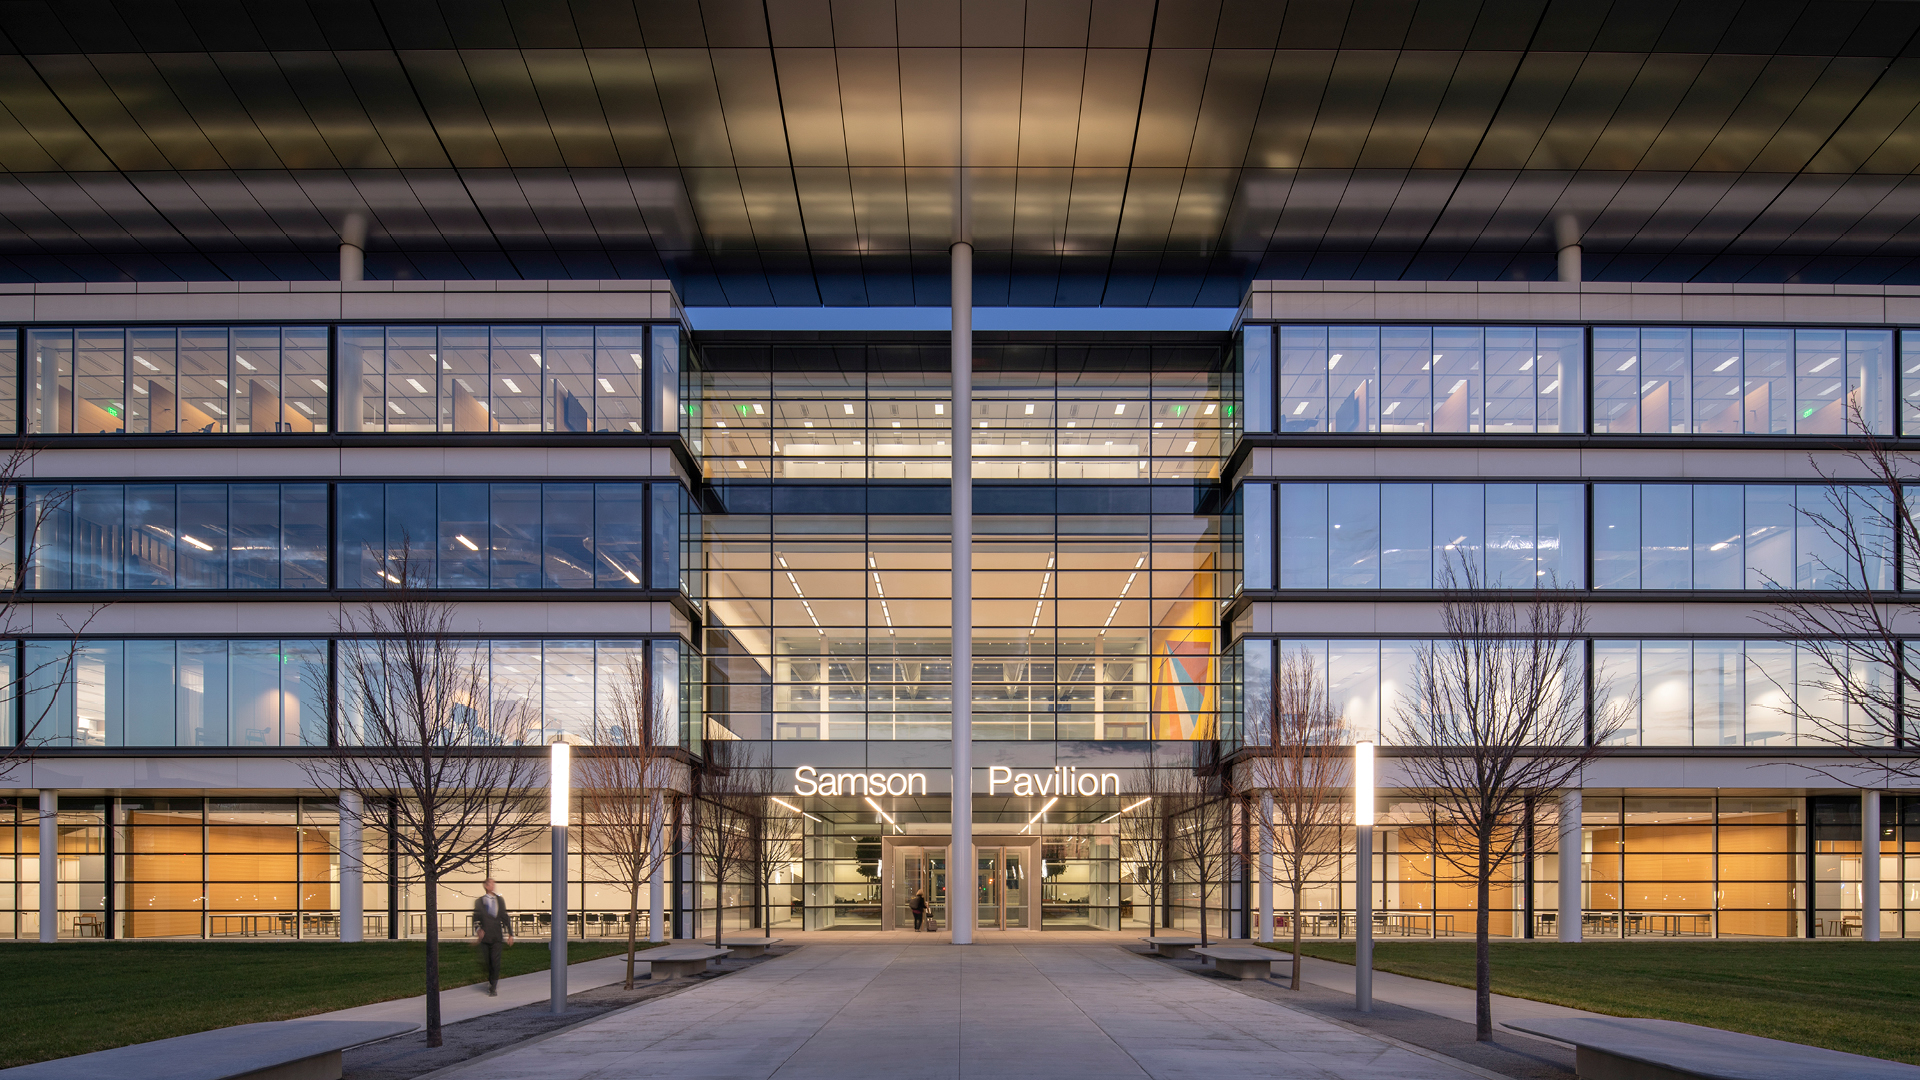 A new pavilion by Foster + Partners pioneers collaborative healthcare in Cleveland